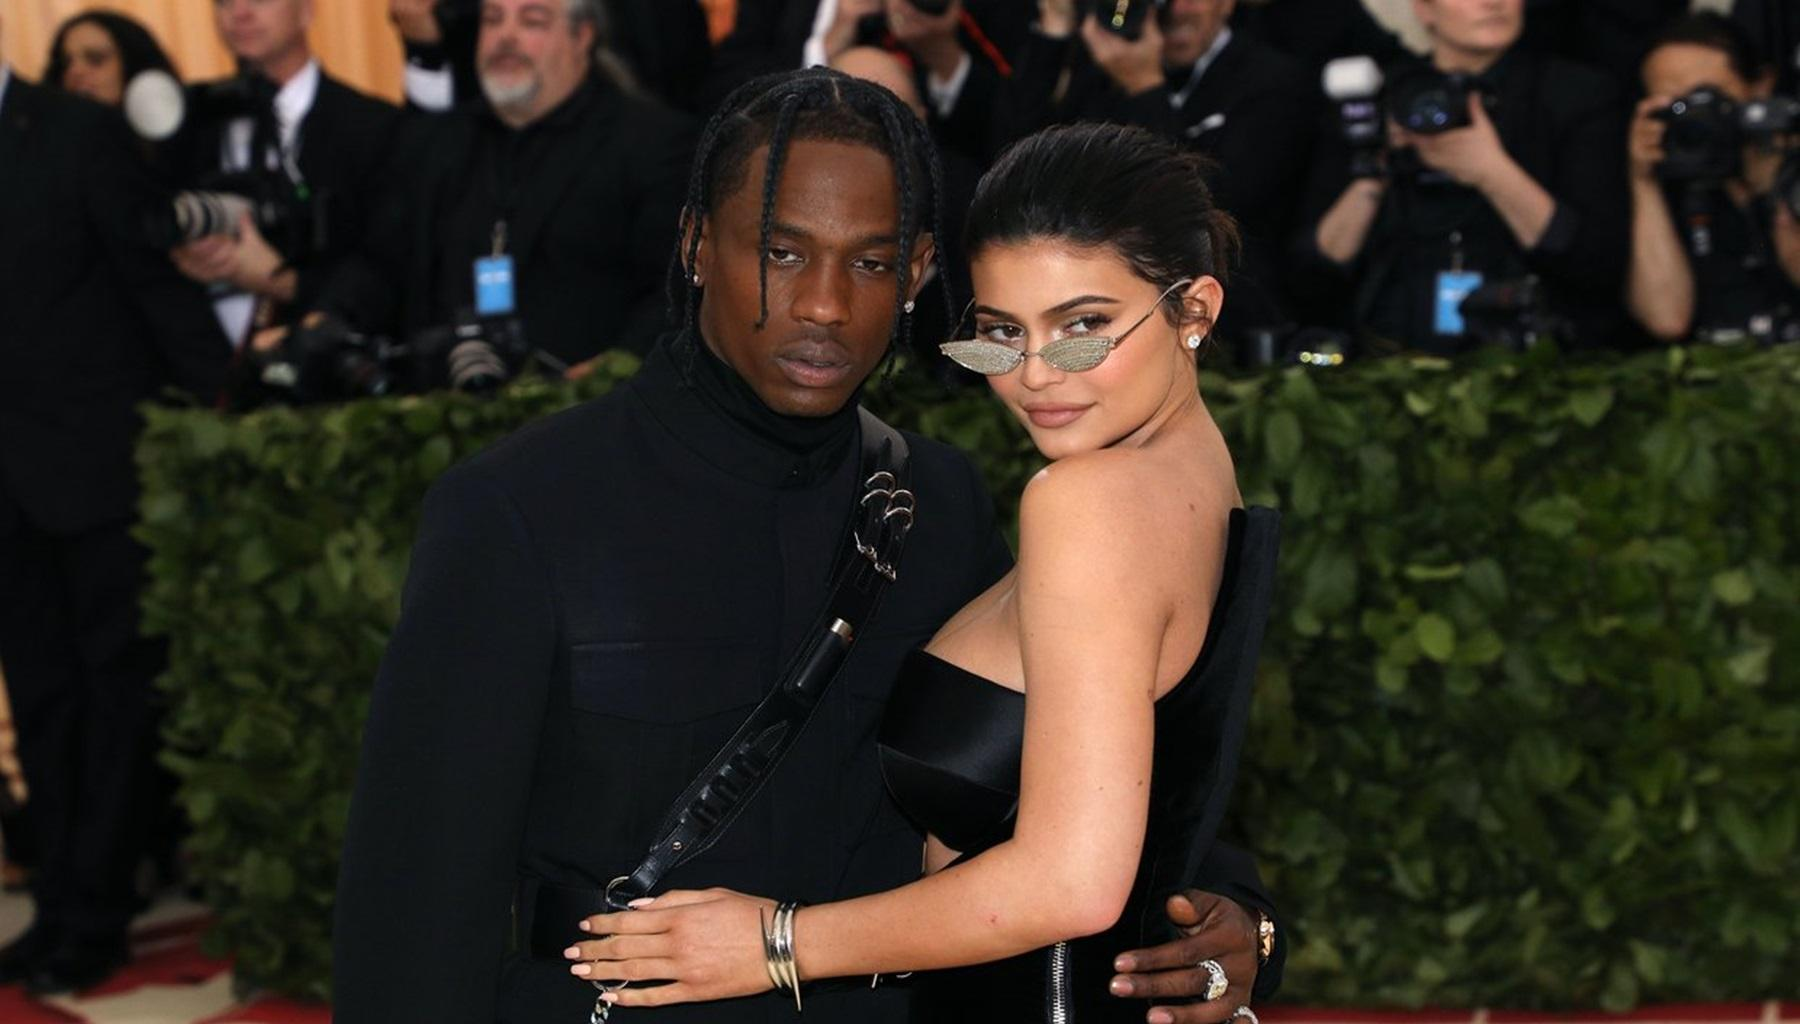 Travis Scott Reacts To The News That Kylie Jenner And Drake Are Dating: Reports